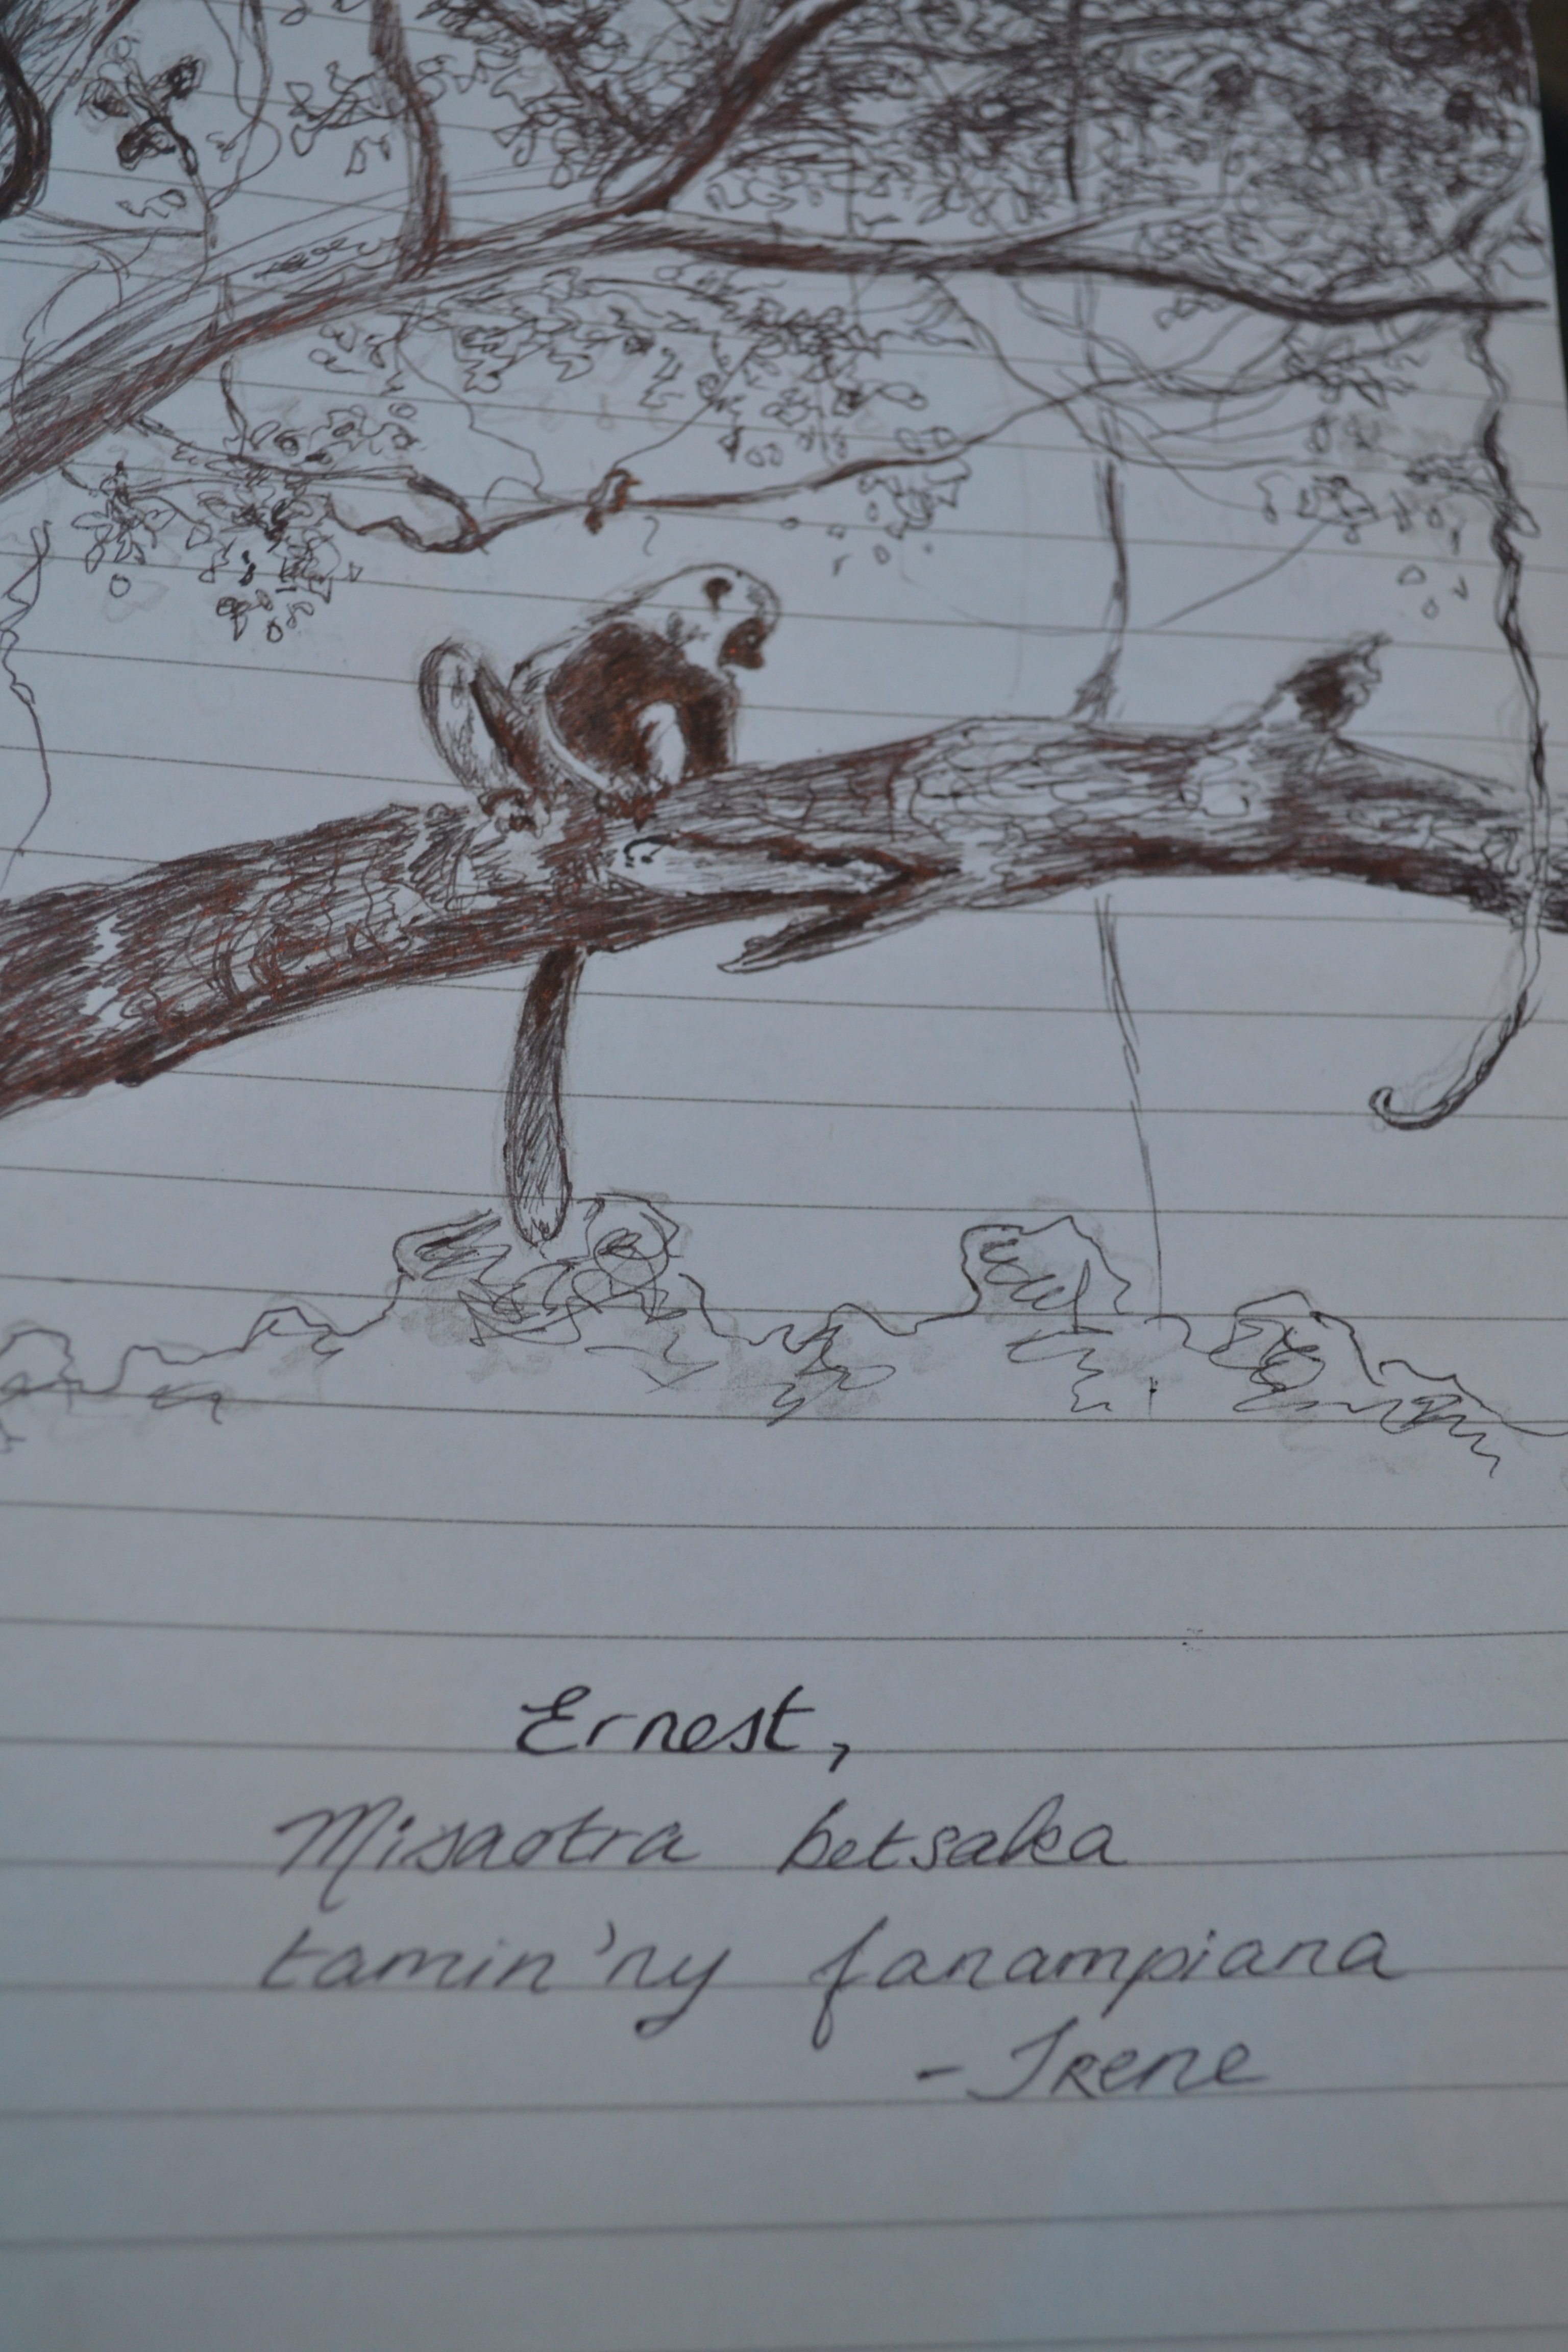 A quick sketch as a parting gift for our incredible guide.